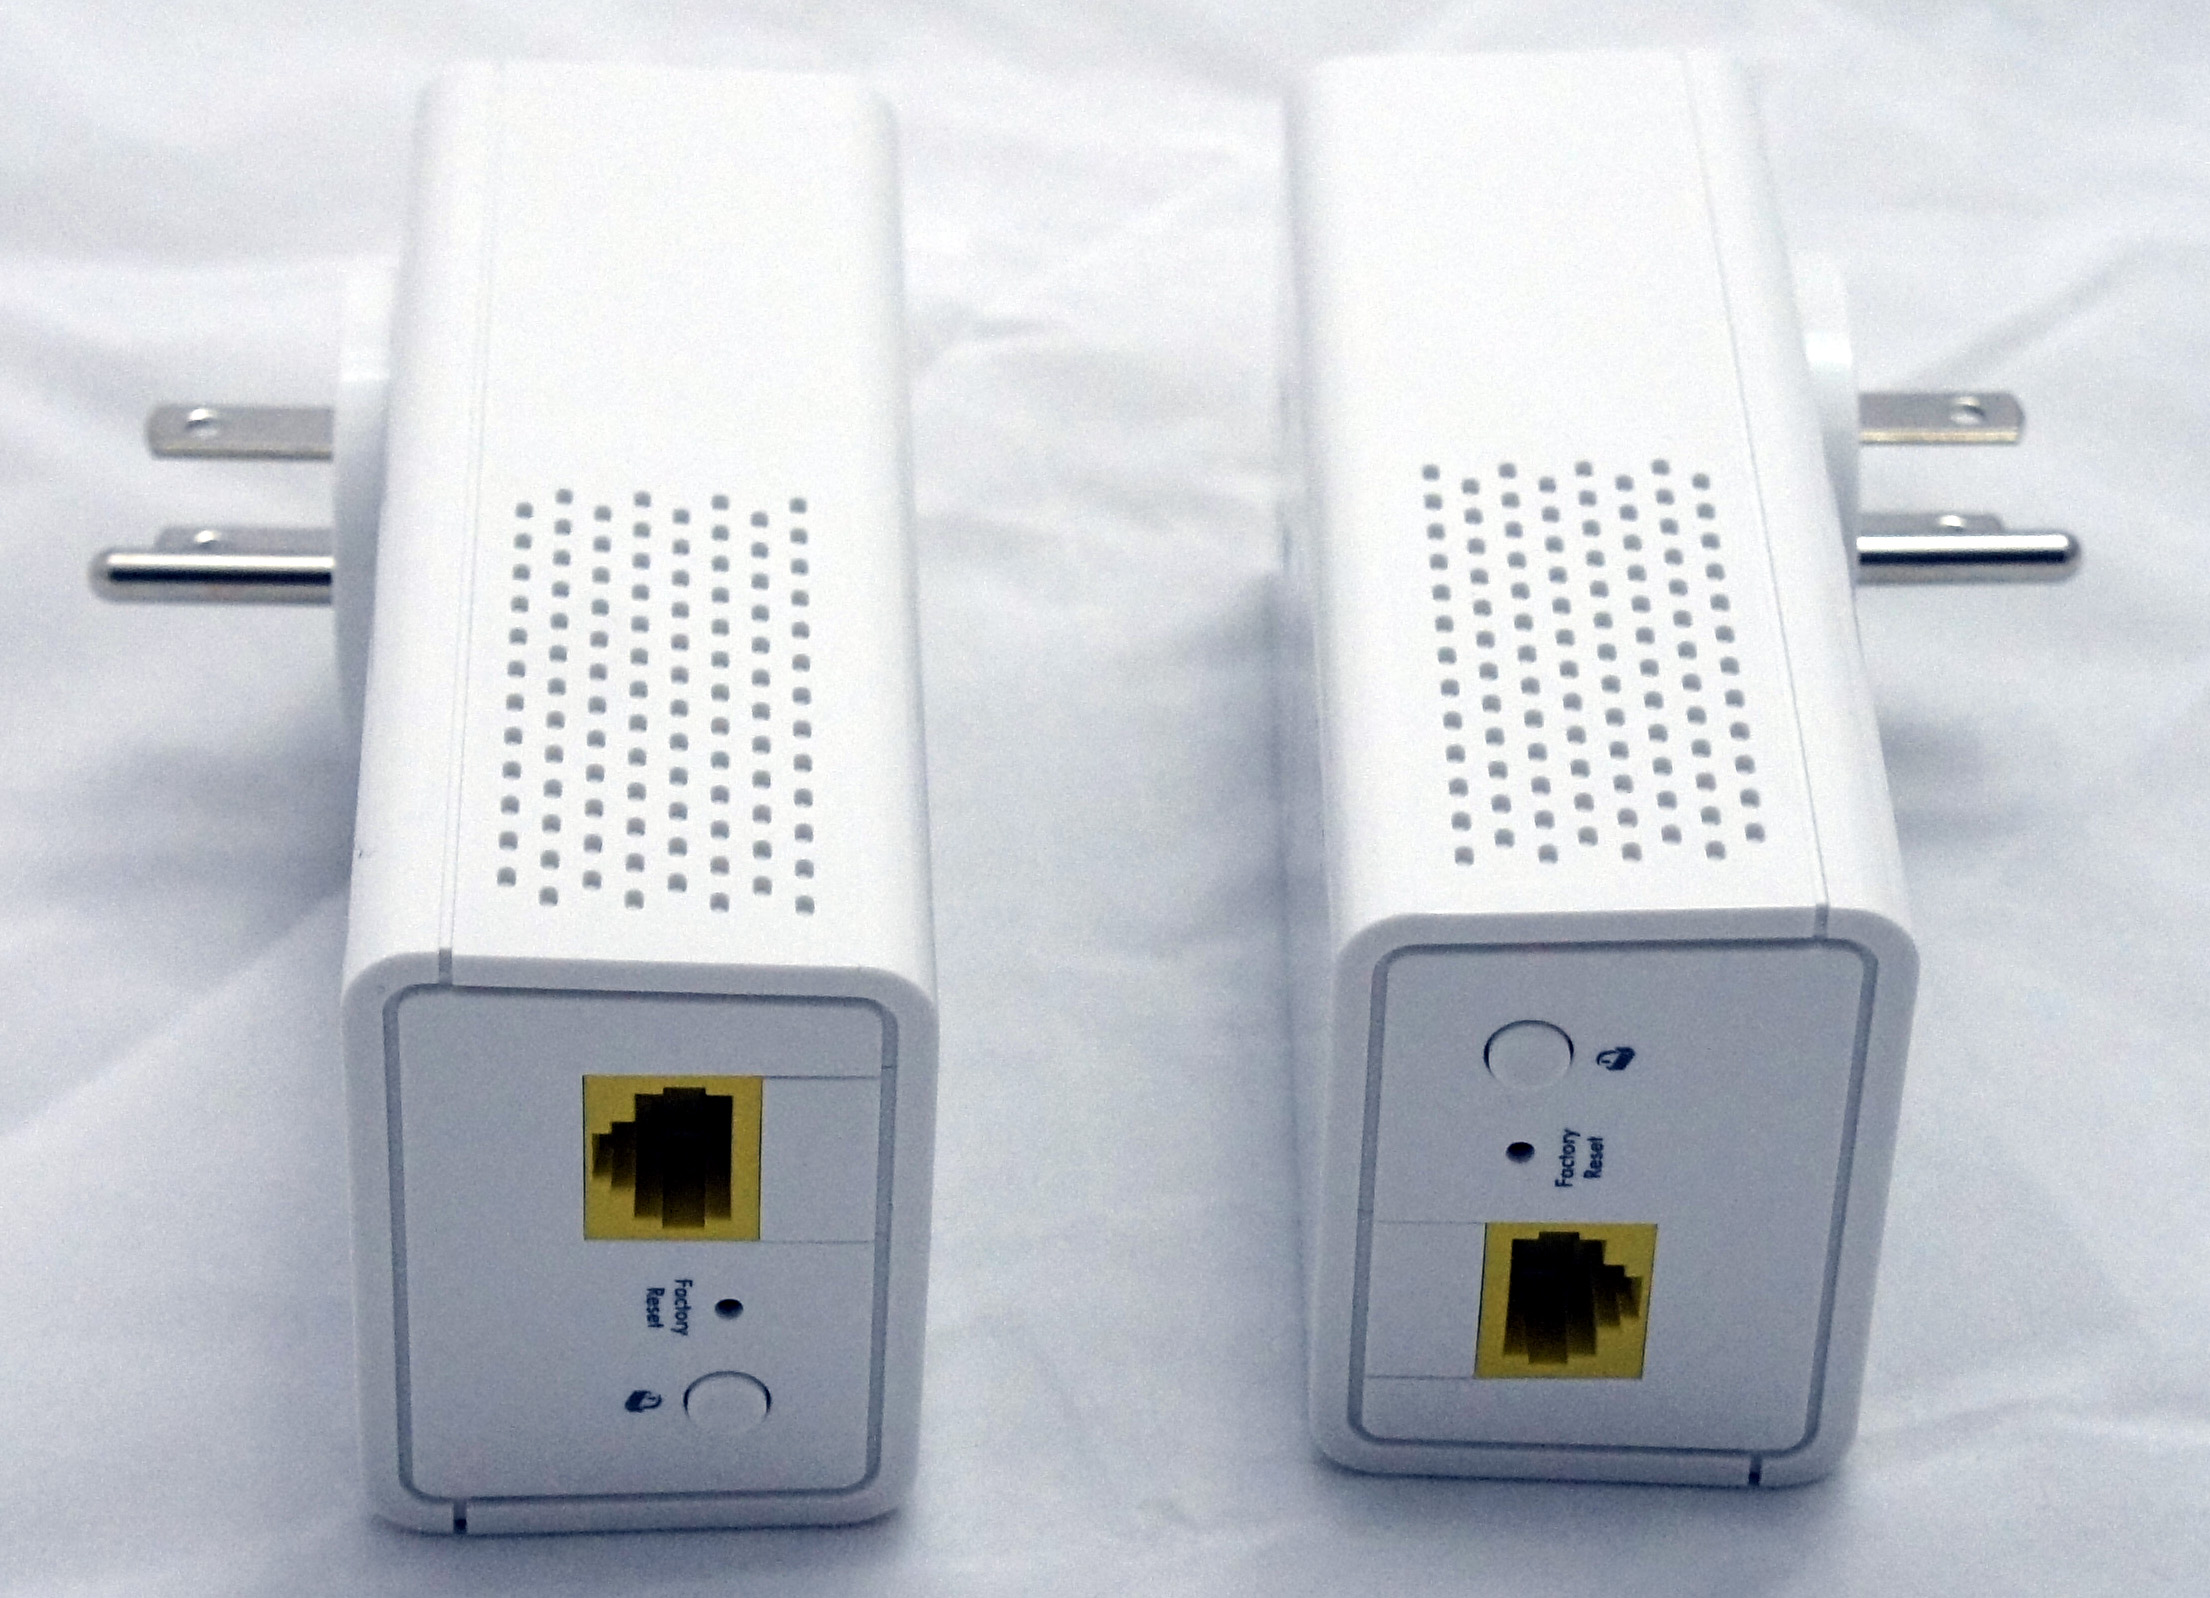 Review Netgear Plp1200 Powerline Network Adapter Not Operator With Homeplugs Using Just Your Existing Electrical Wiring In Any Case The Latest Homeplug Av2 Standard Uses Fastest Two Wires From Three Live Neutral Ground Configuration